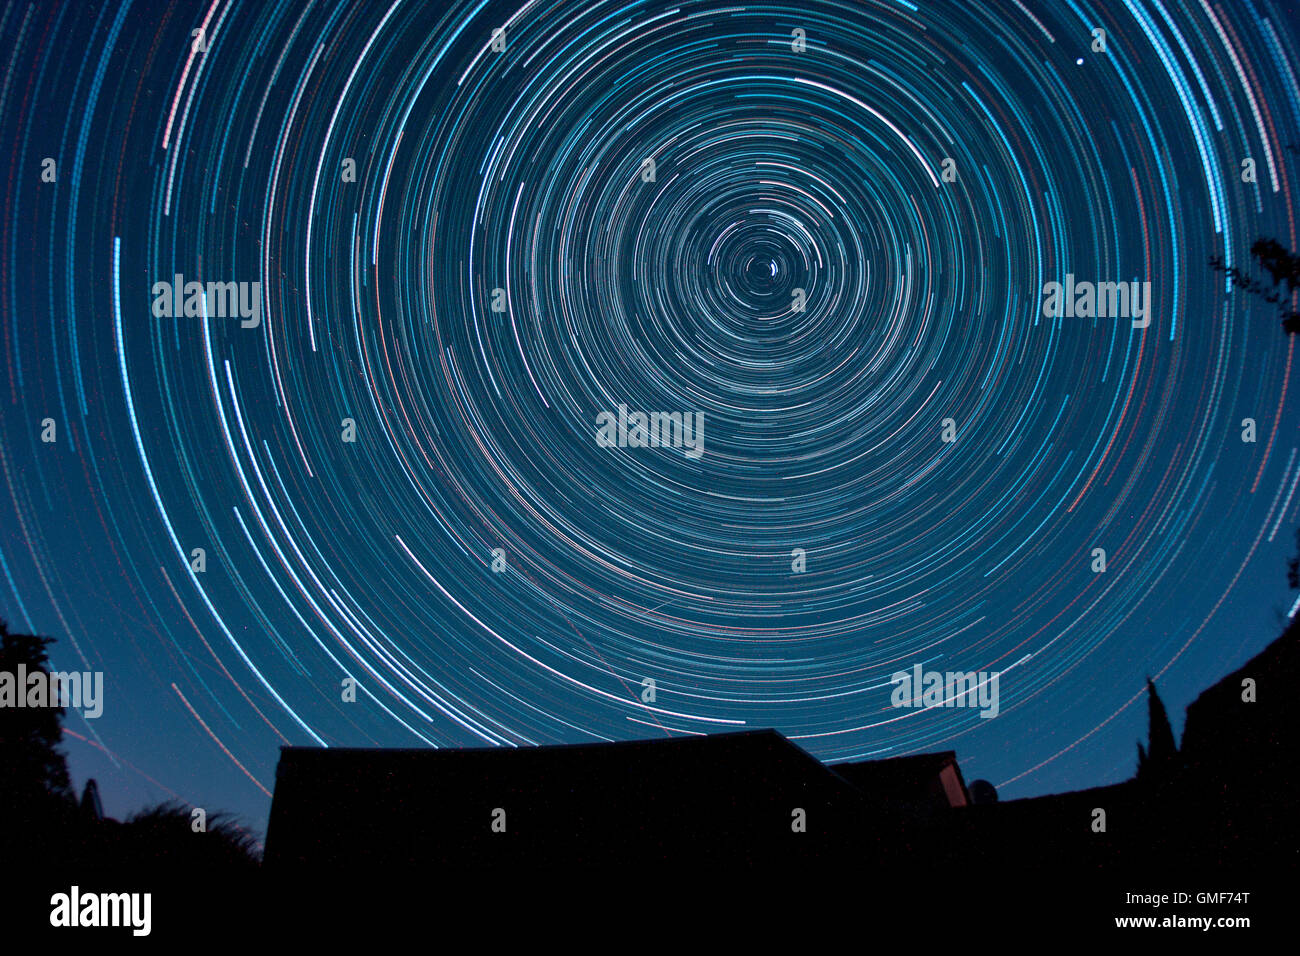 Sablet, Provence Alpes, France. 25th August 2016. 3.5 hour star trail exposure above a Provence village house. Single - Stock Image